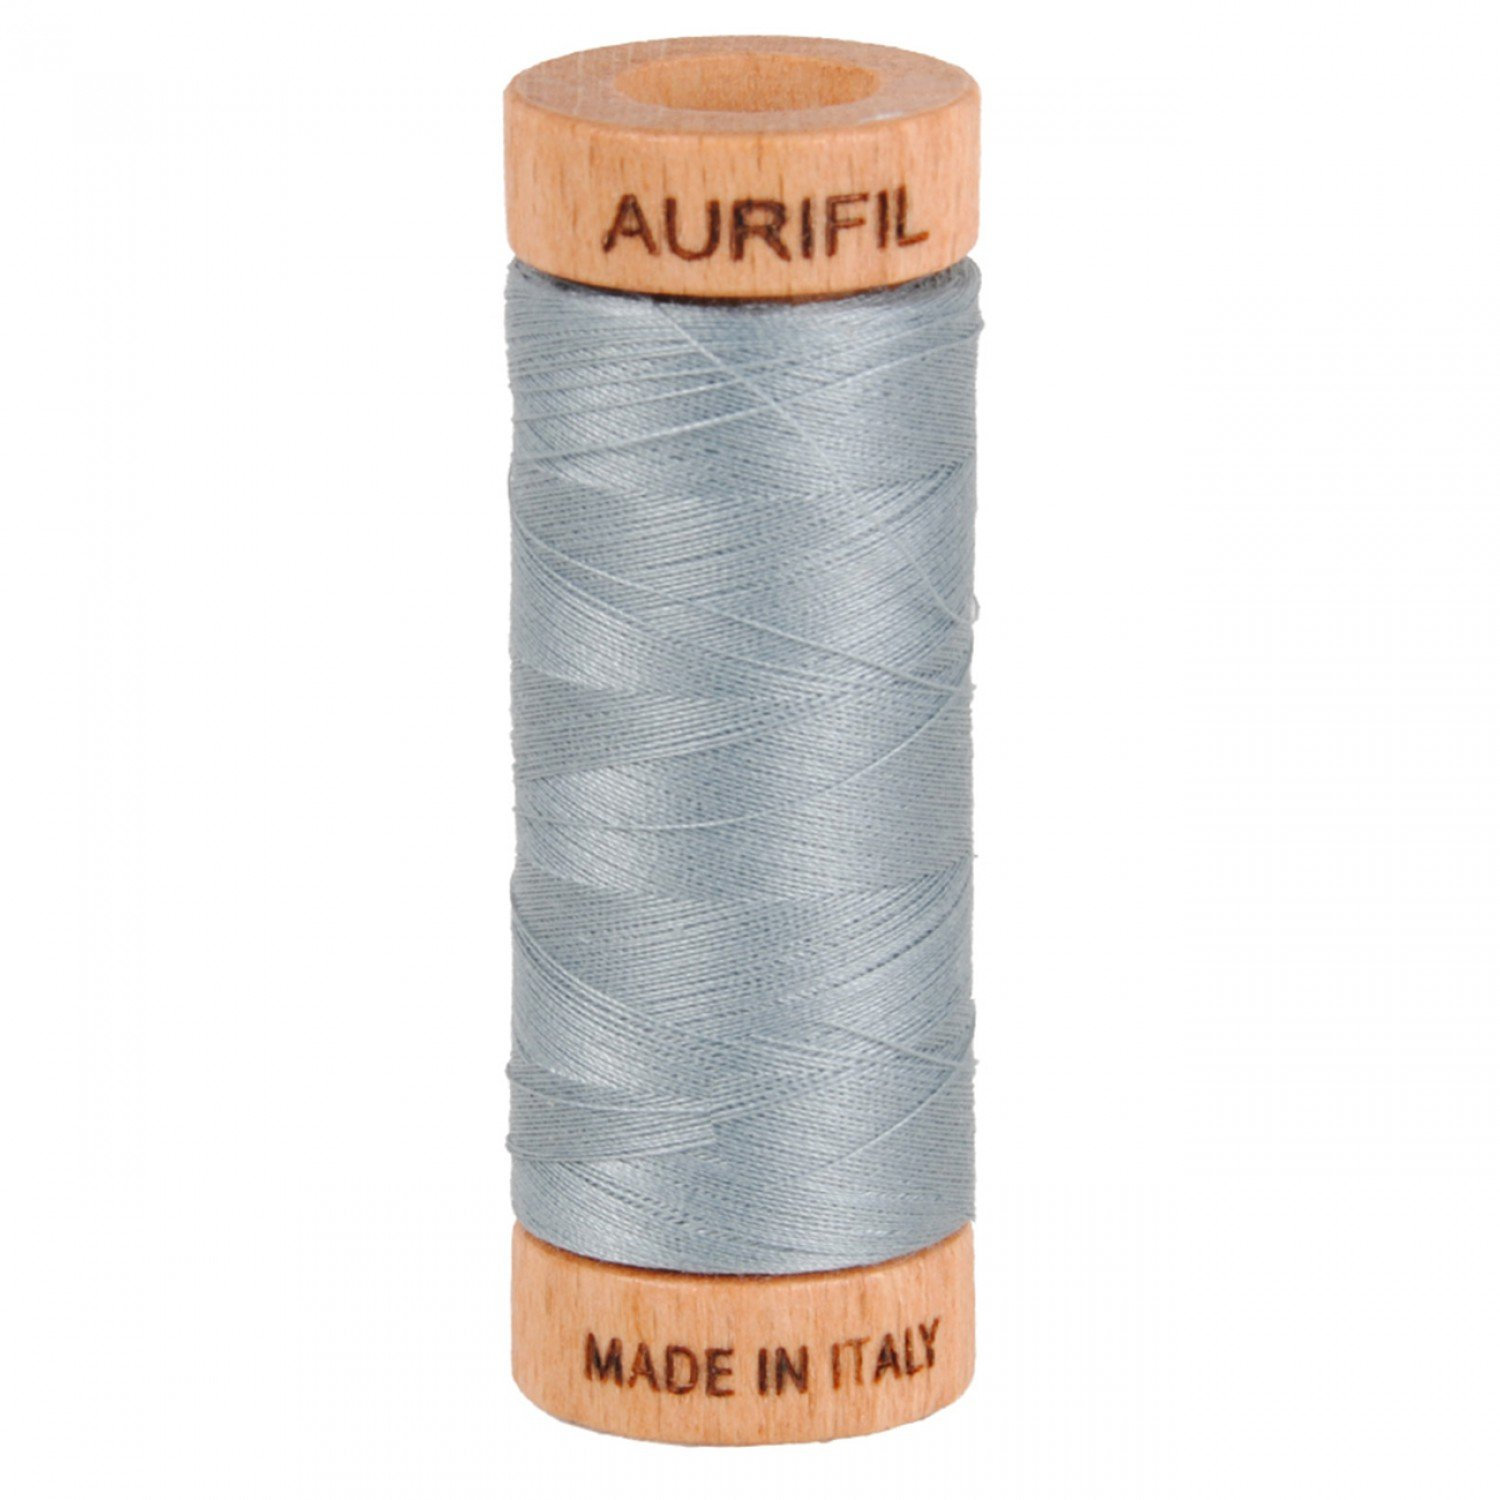 80 wt Aurifil - 2610 Light Blue Grey